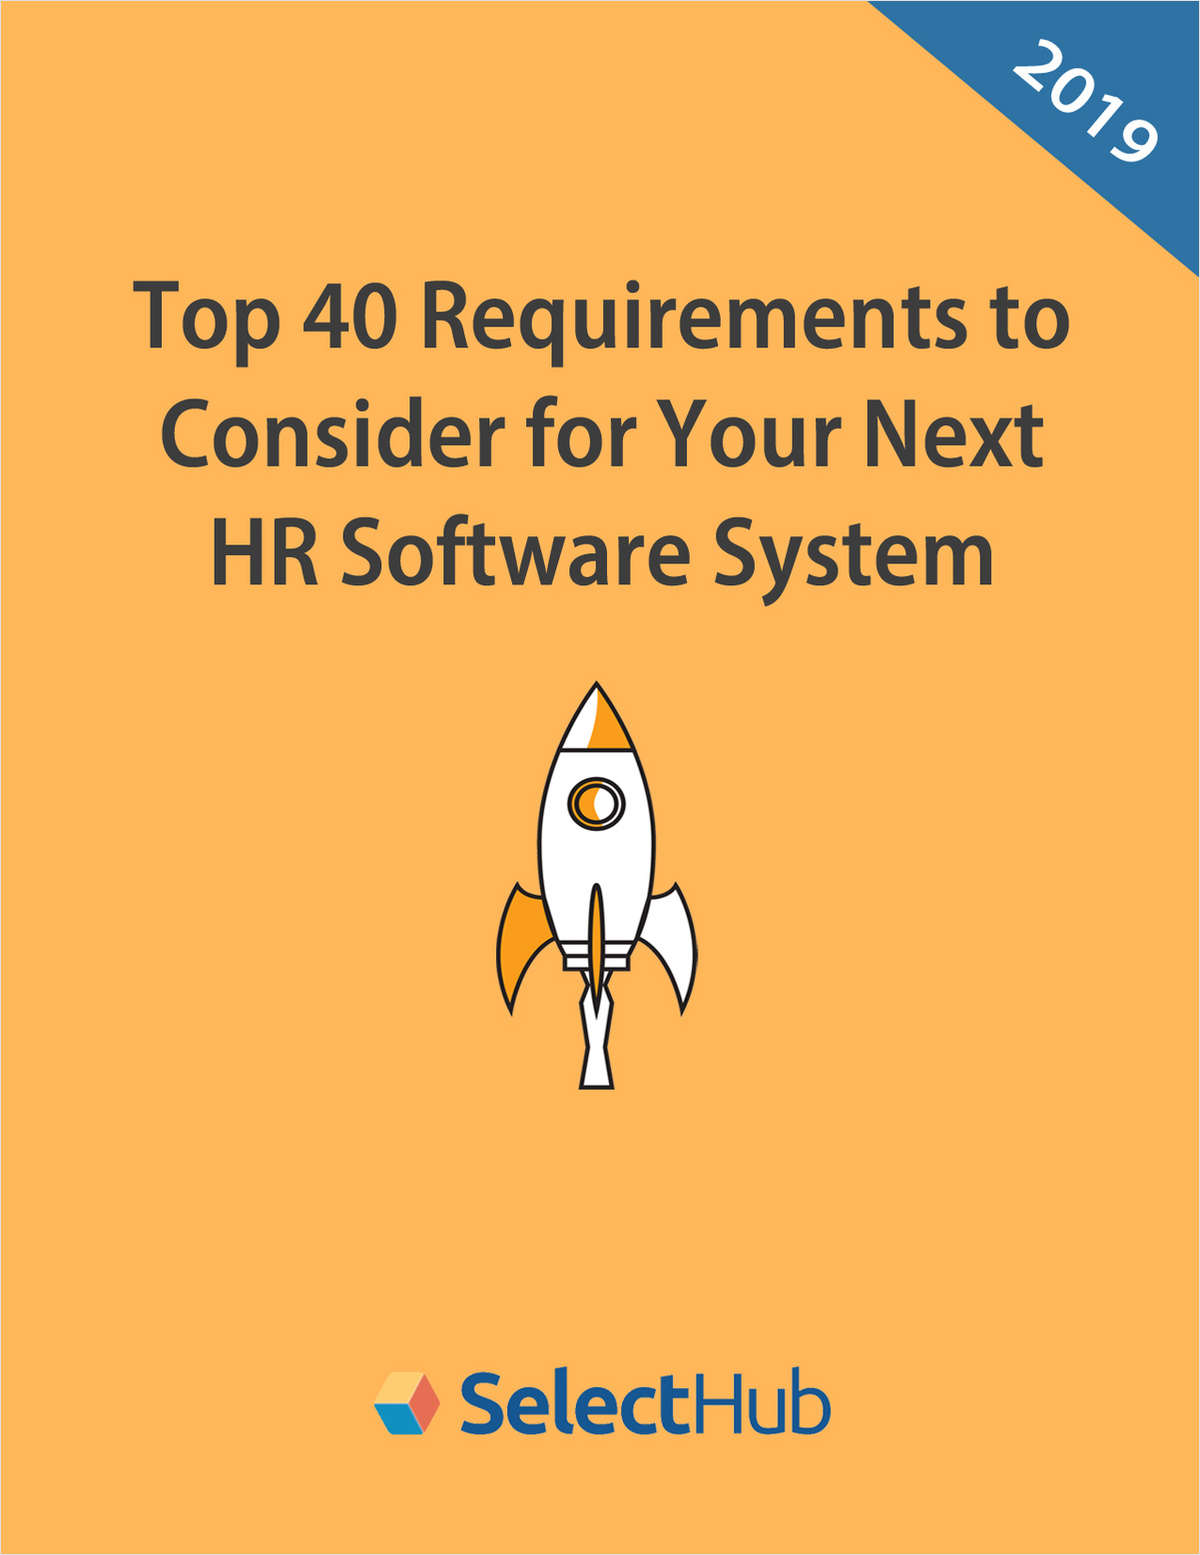 Top 40 Requirements to Consider for Your Next HR Management Software